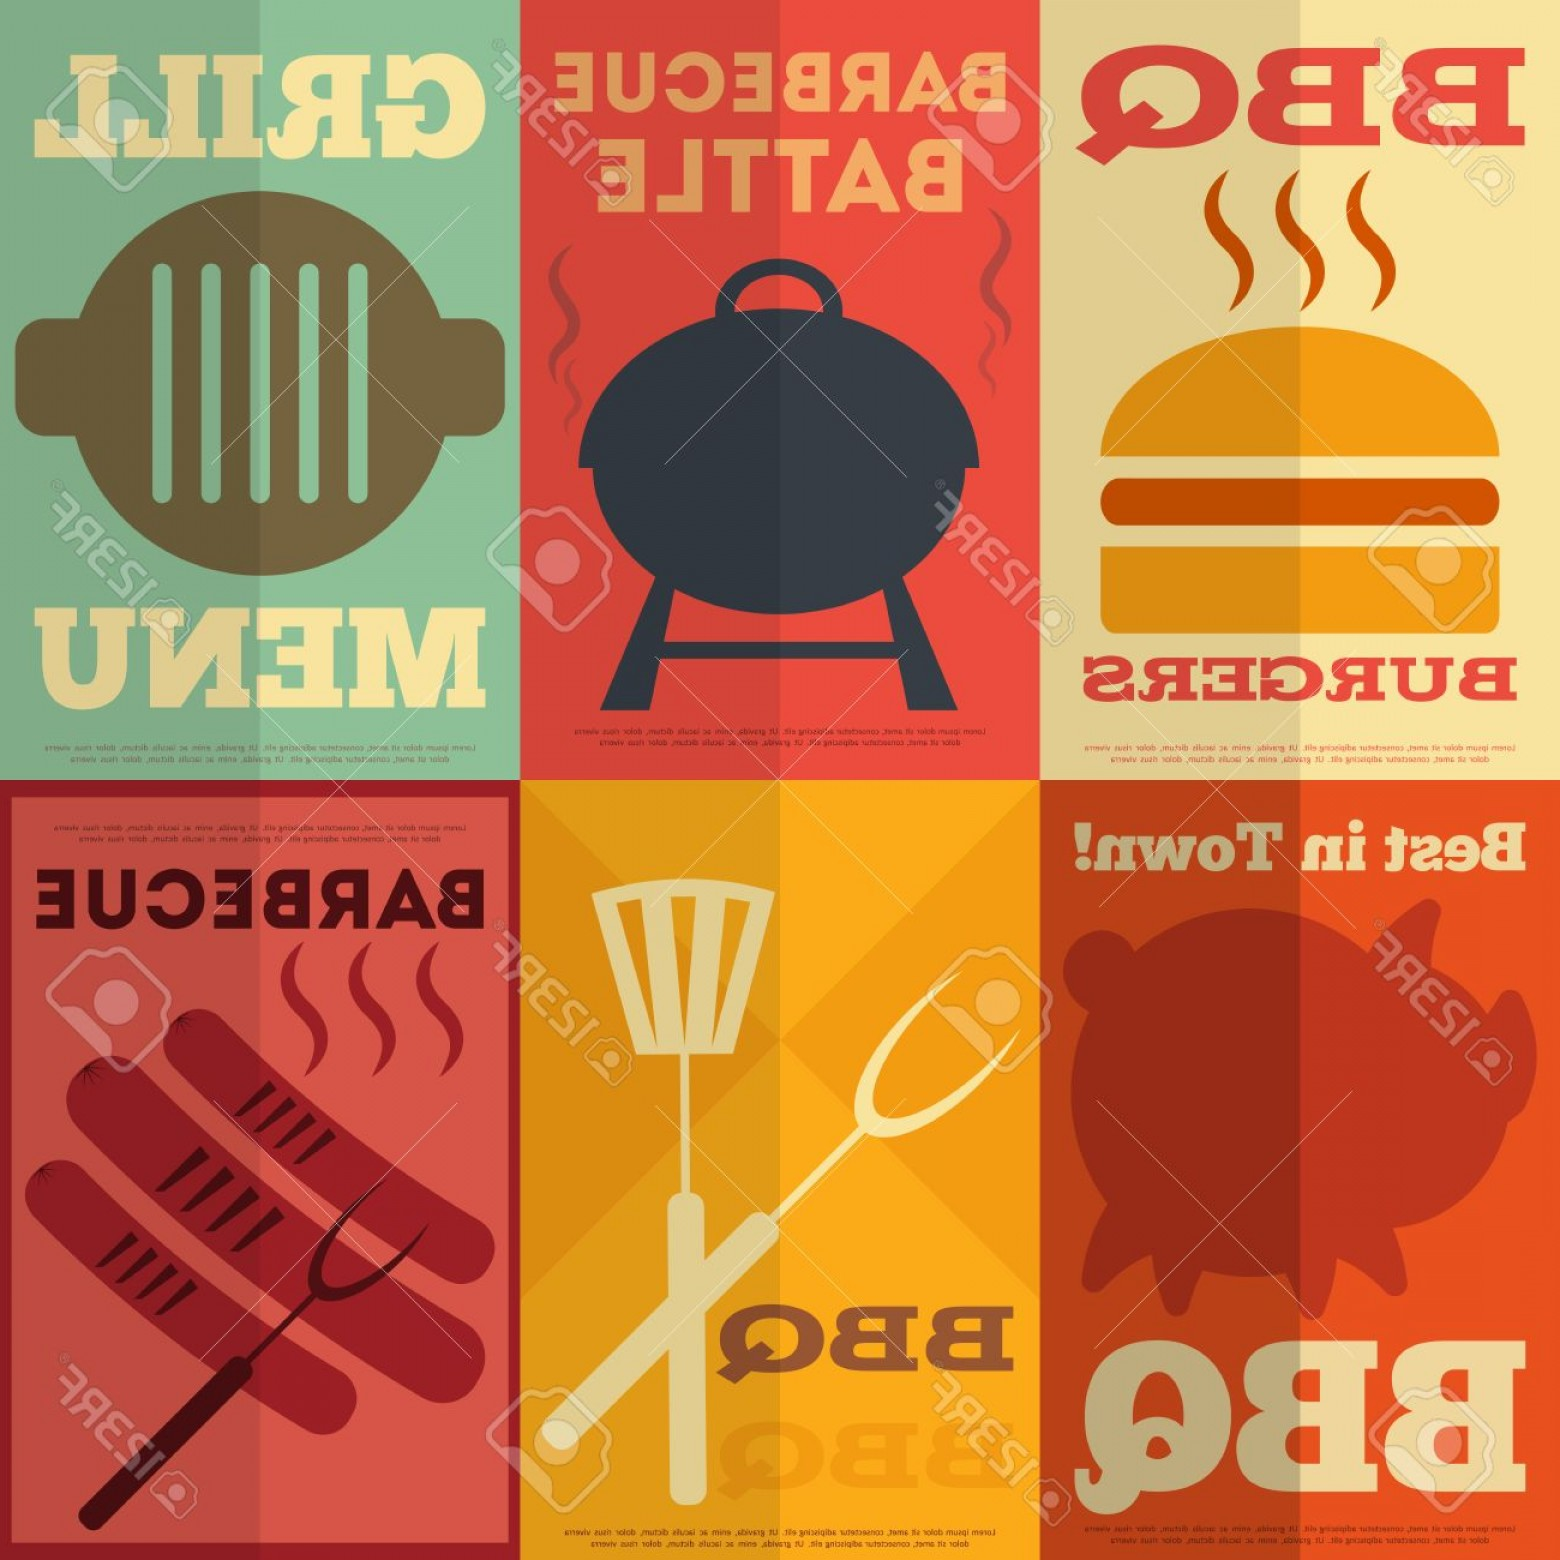 Vector Posters Design: Photoretro Barbecue Posters Collection In Flat Design Style Vector Illustration